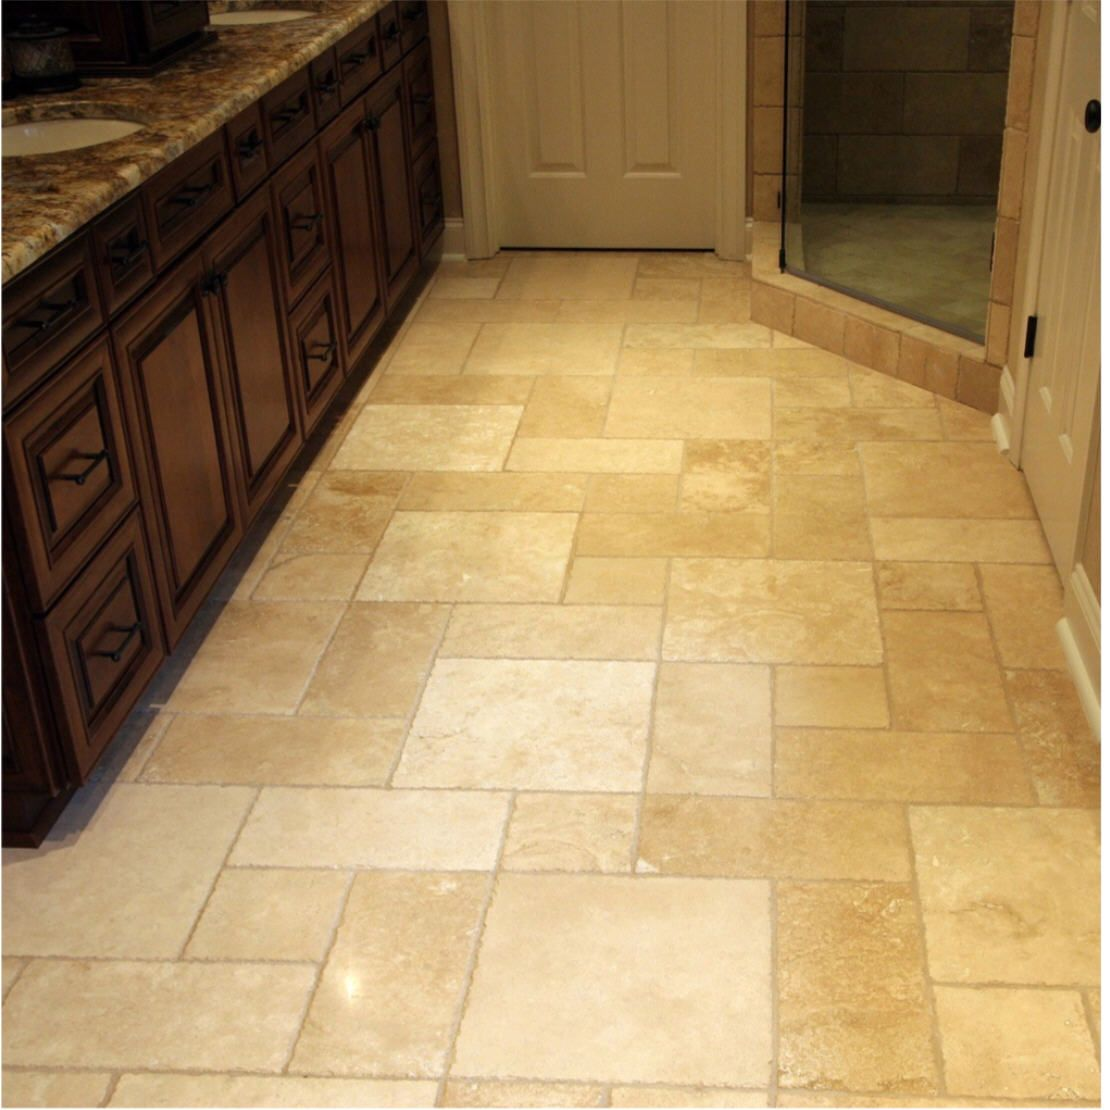 Travertine tile floor pattern called hopscotch affordable design travertine tile floor pattern called hopscotch dailygadgetfo Gallery